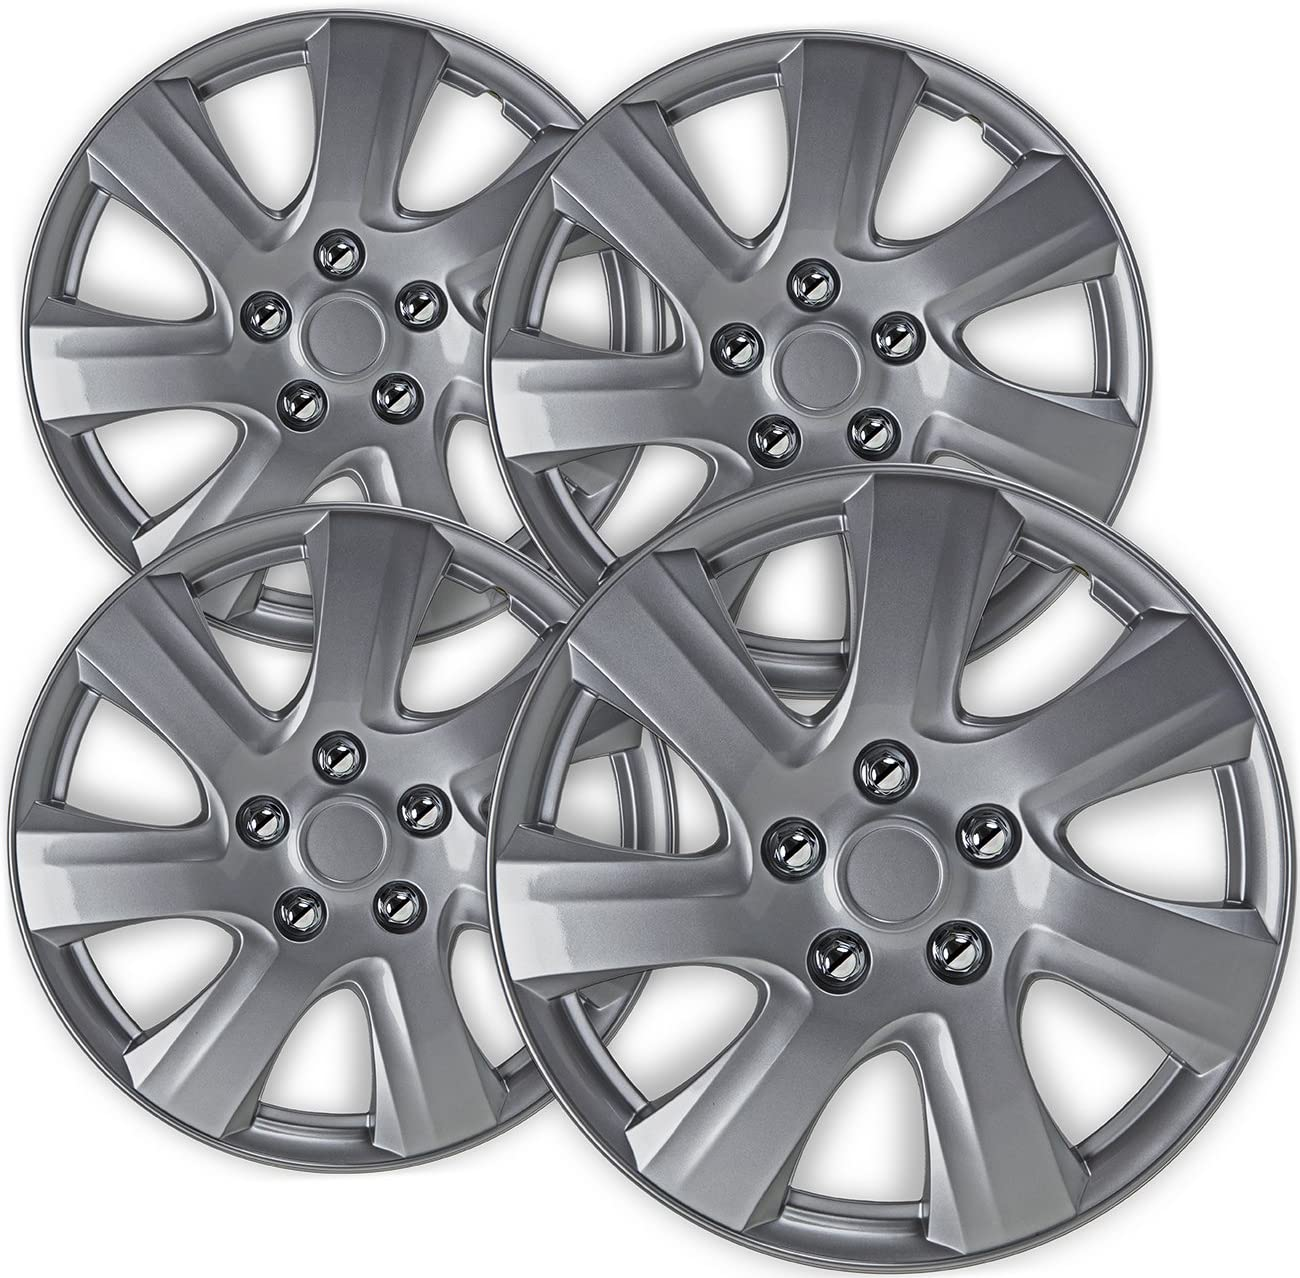 Amazon Com 16 Inch Hubcaps Best For 2010 2011 Toyota Camry Set Of 4 Wheel Covers 16in Hub Caps Silver Rim Cover Car Accessories For 16 Inch Wheels Snap On Hubcap